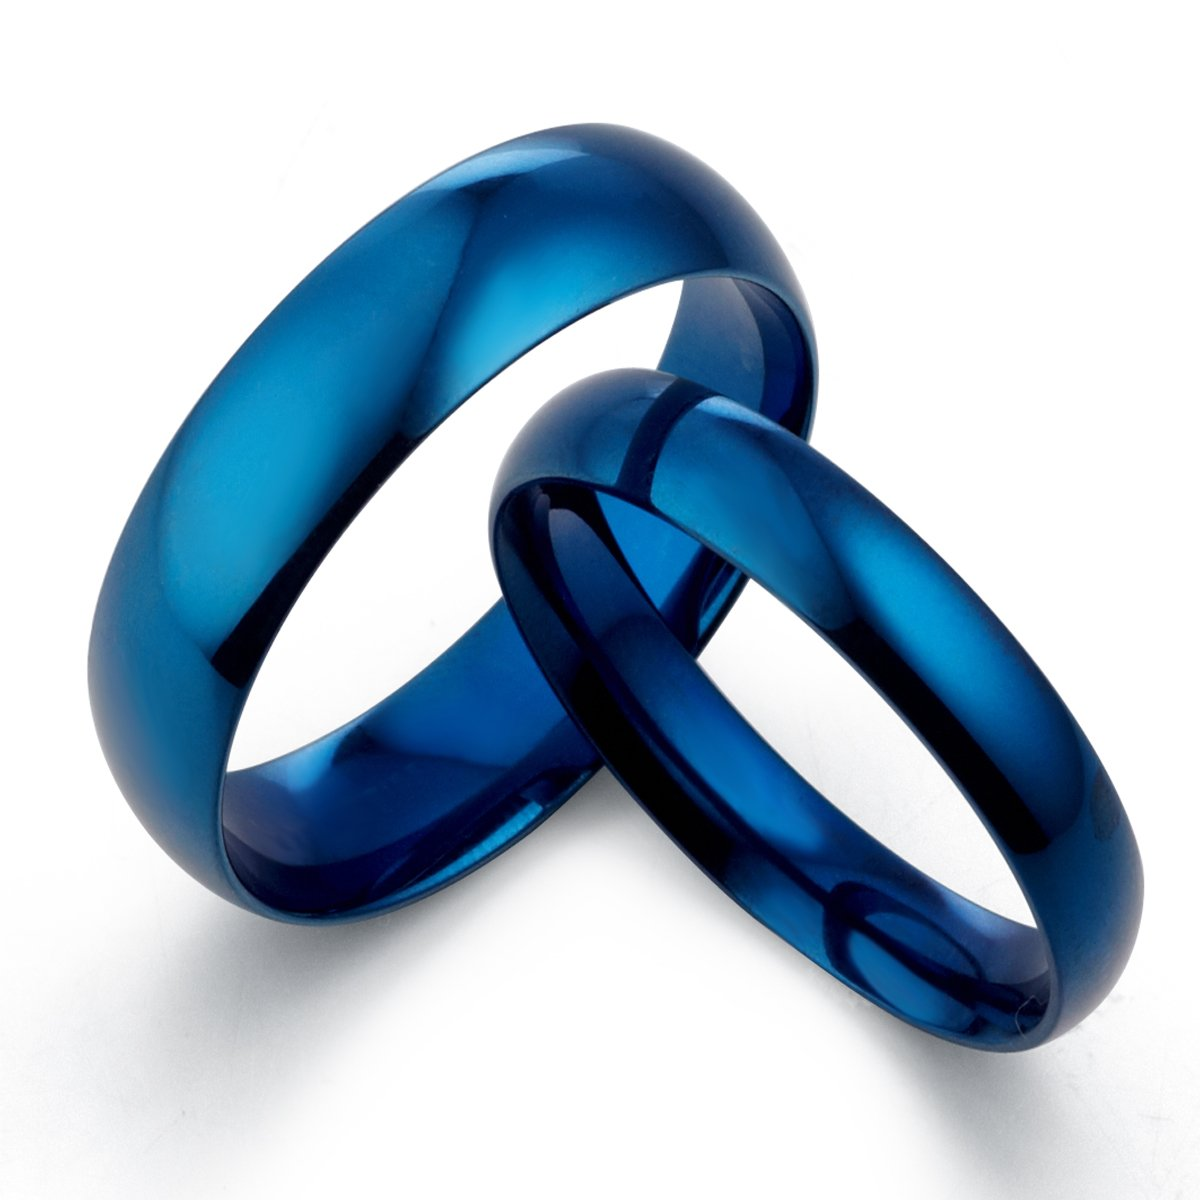 Gemini His & Her 's Dome Blue Polish Promise Couple Wedding Titanium Ring Set Width 6mm & 4mm Men Ring Size : 13 Women Ring Size : 8.5 Valentine's Day Gifts